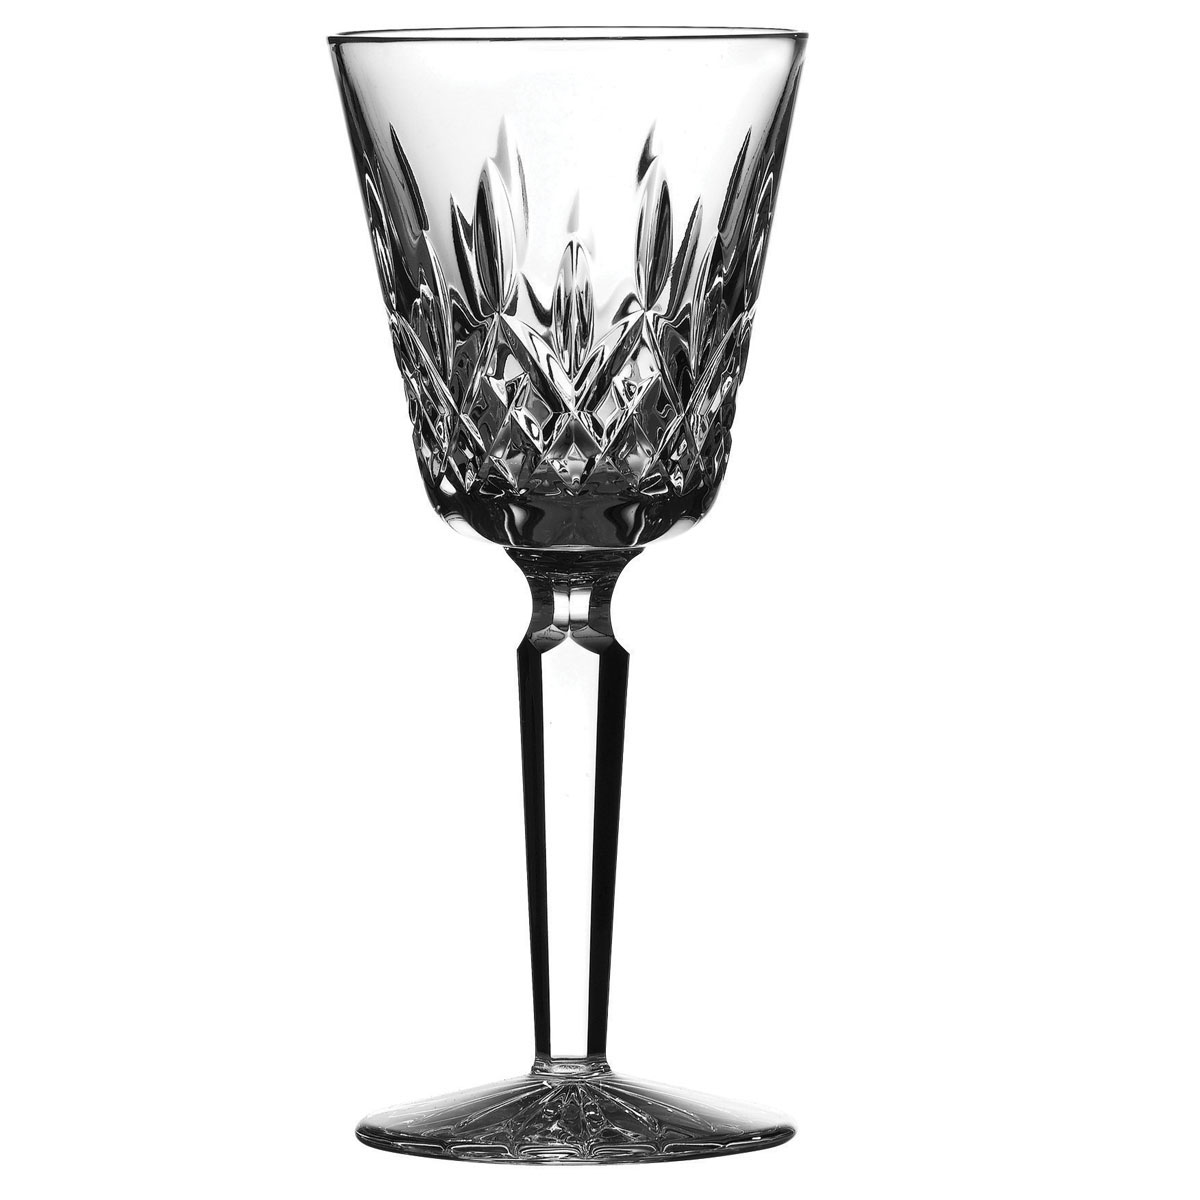 Waterford Crystal, Lismore Tall Claret Wine Glass, Single